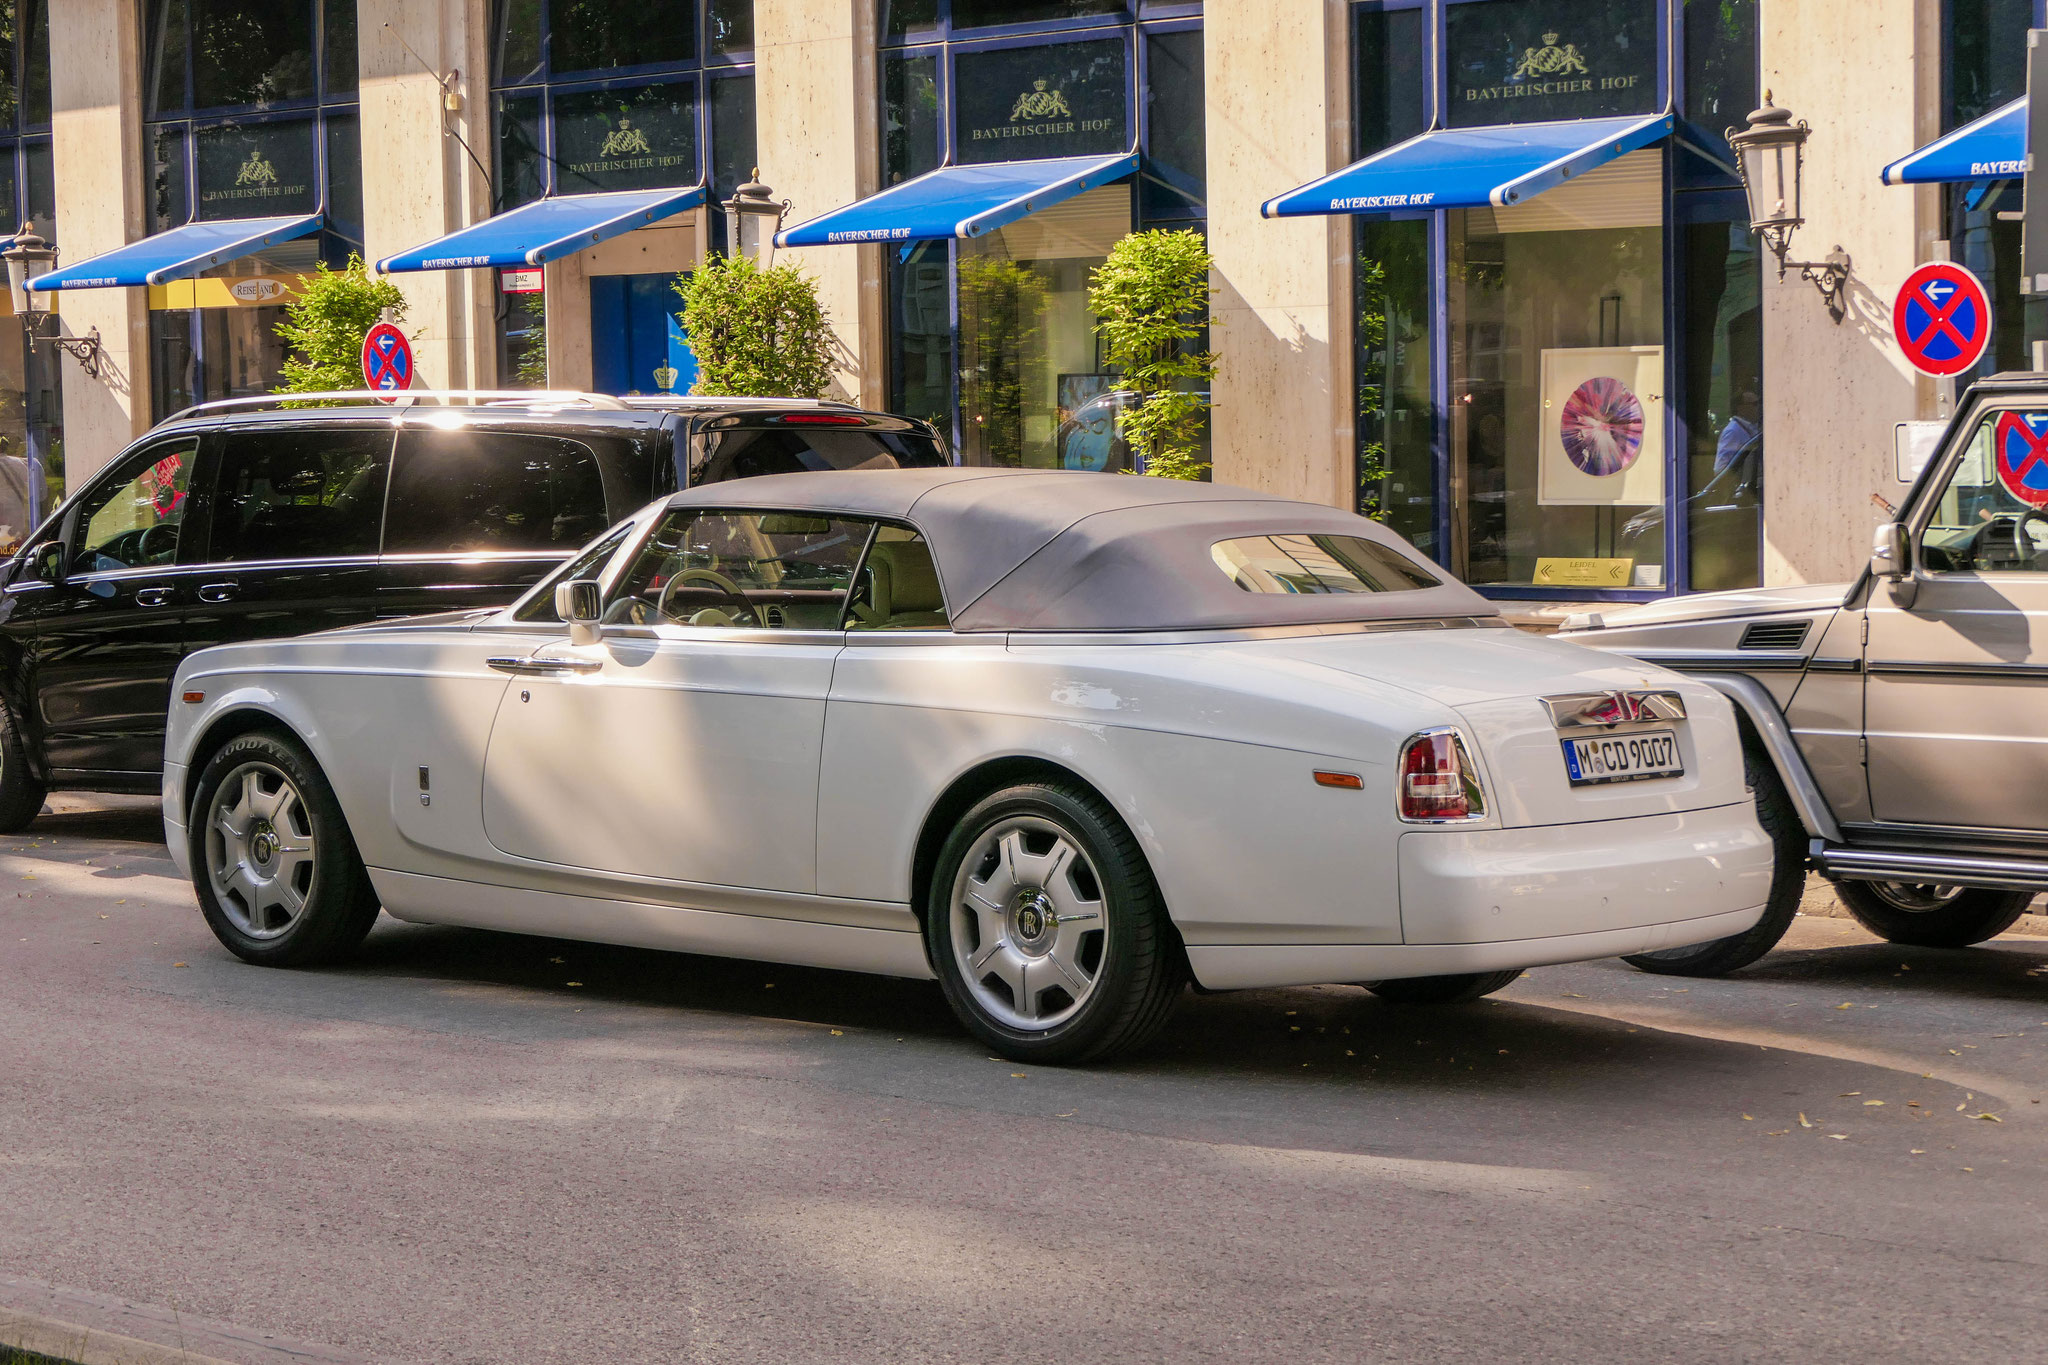 Rolls Royce Drophead - M-CD-9007